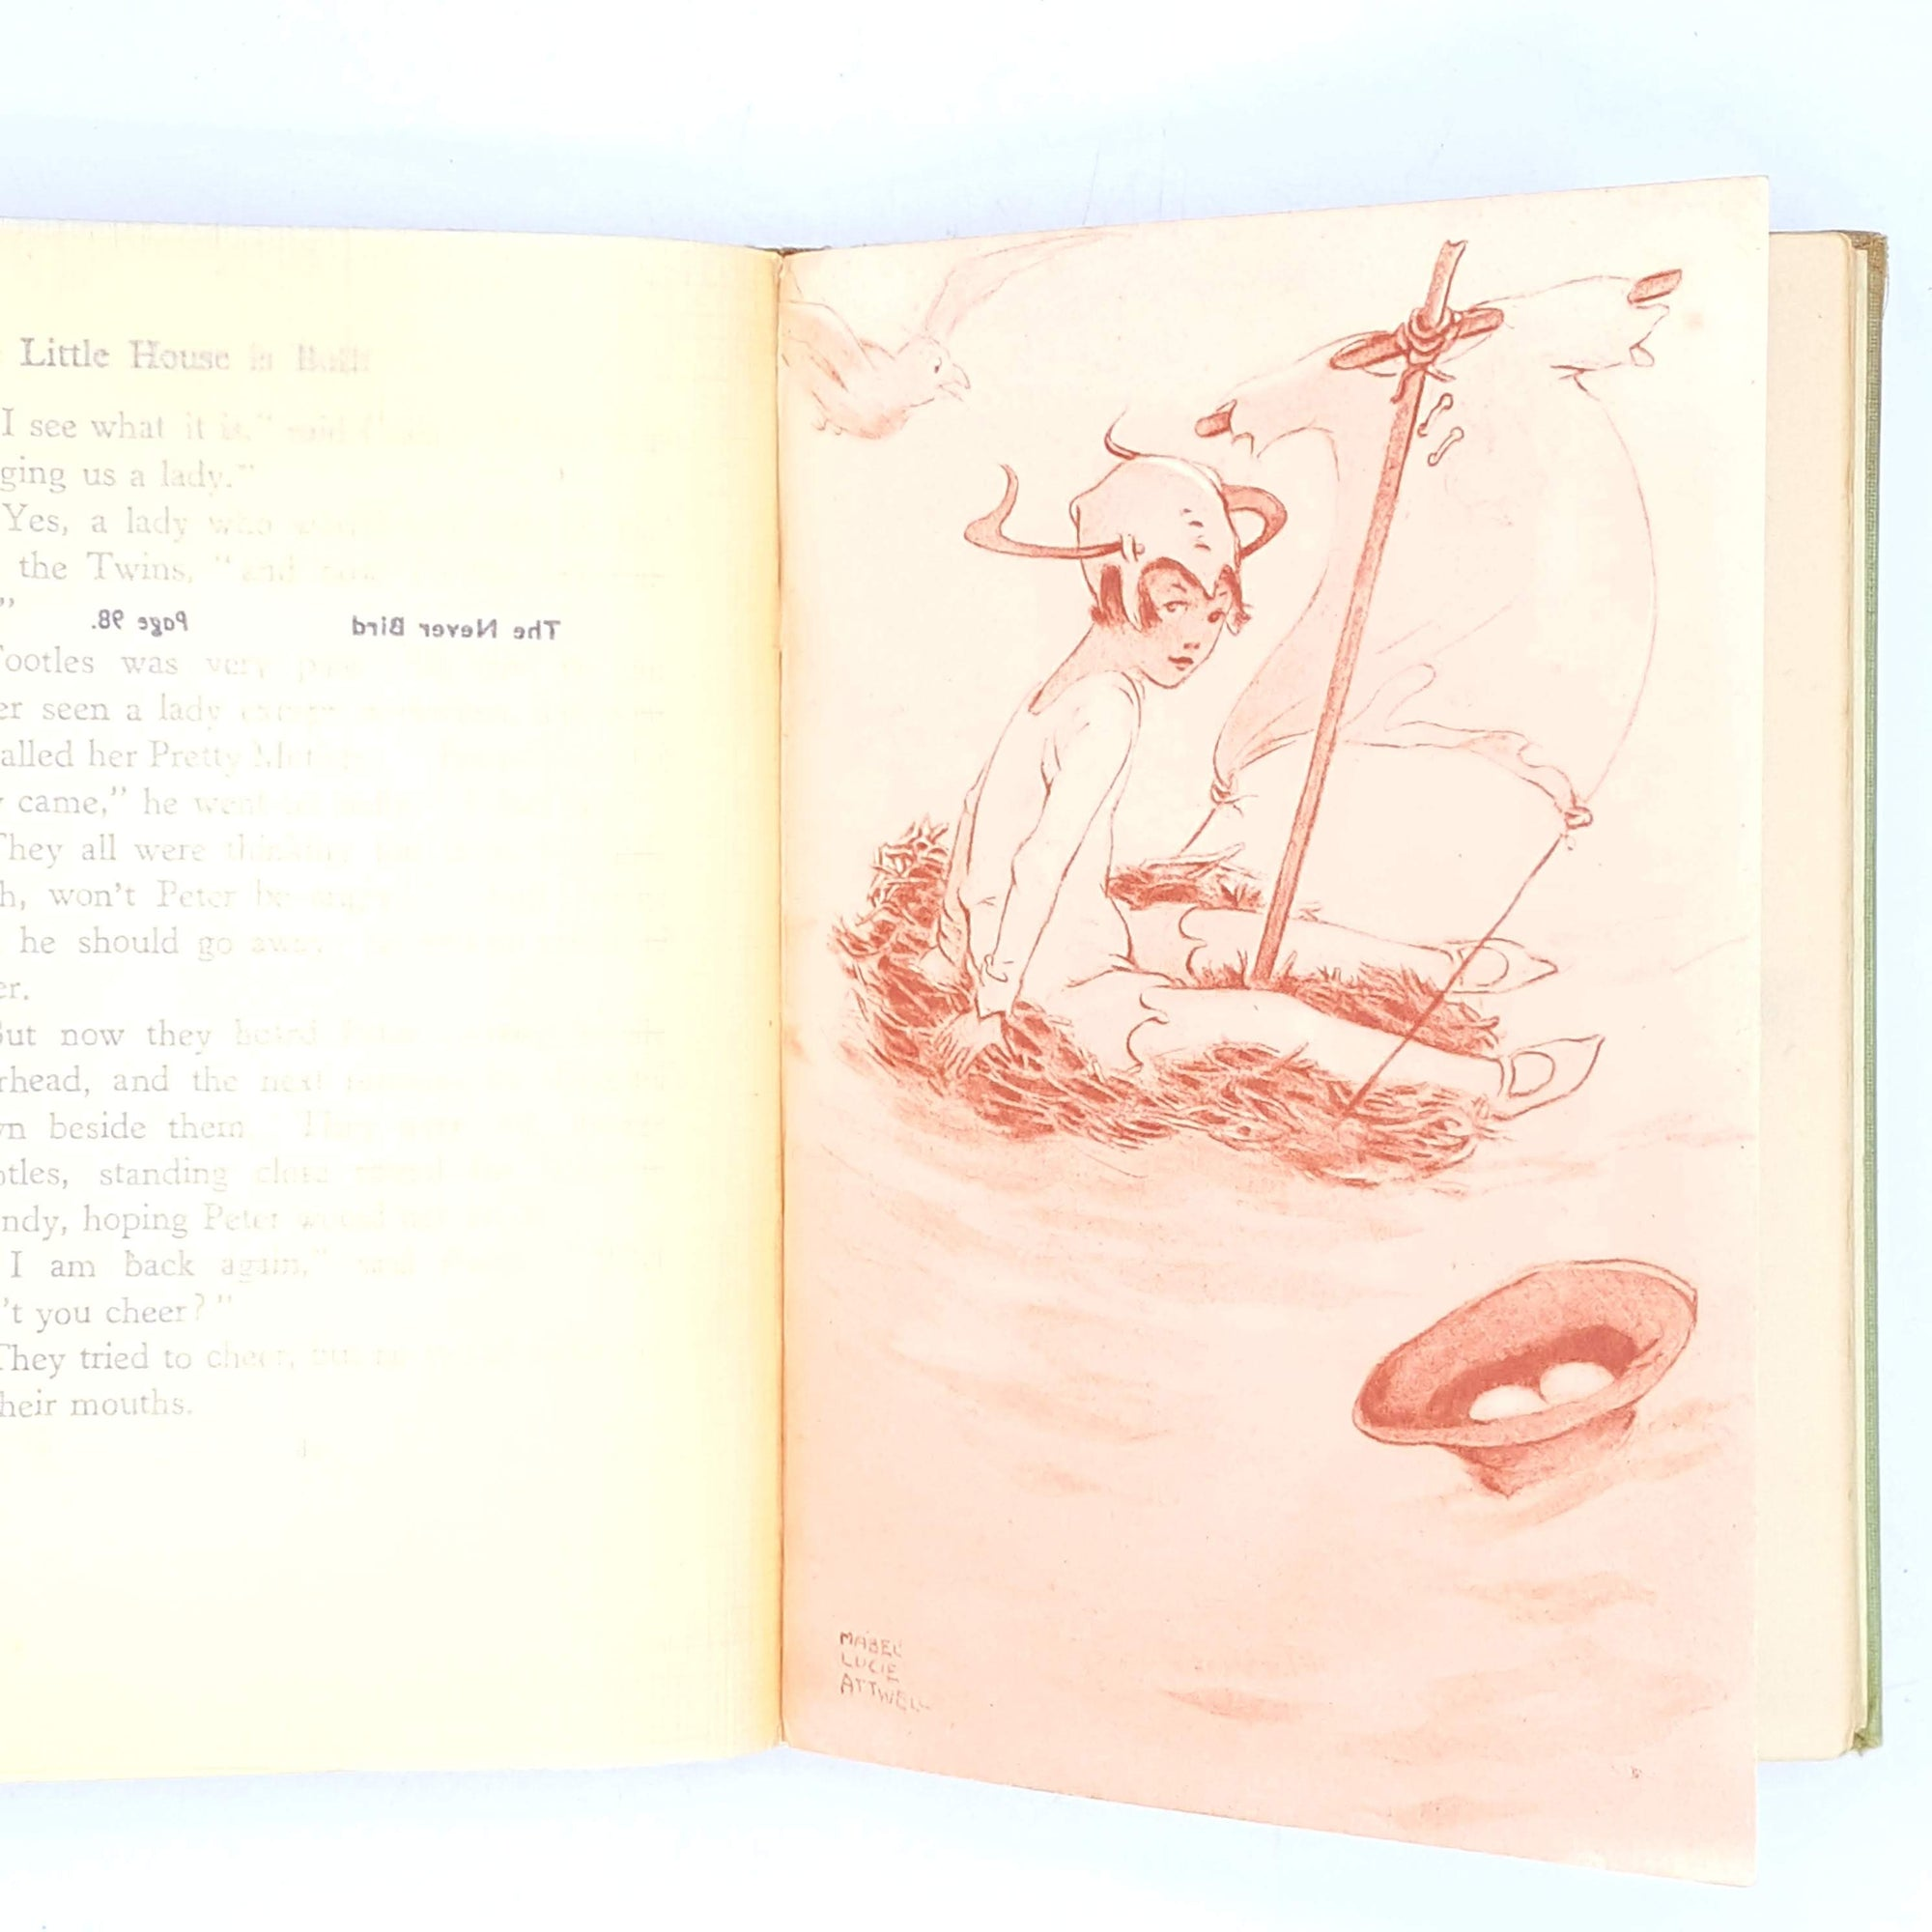 peter-pan-childrens-thrift-classics-wendy-country-house-library-vintage-books-old-jmbarrie-green-illustrated-hodder-photography-